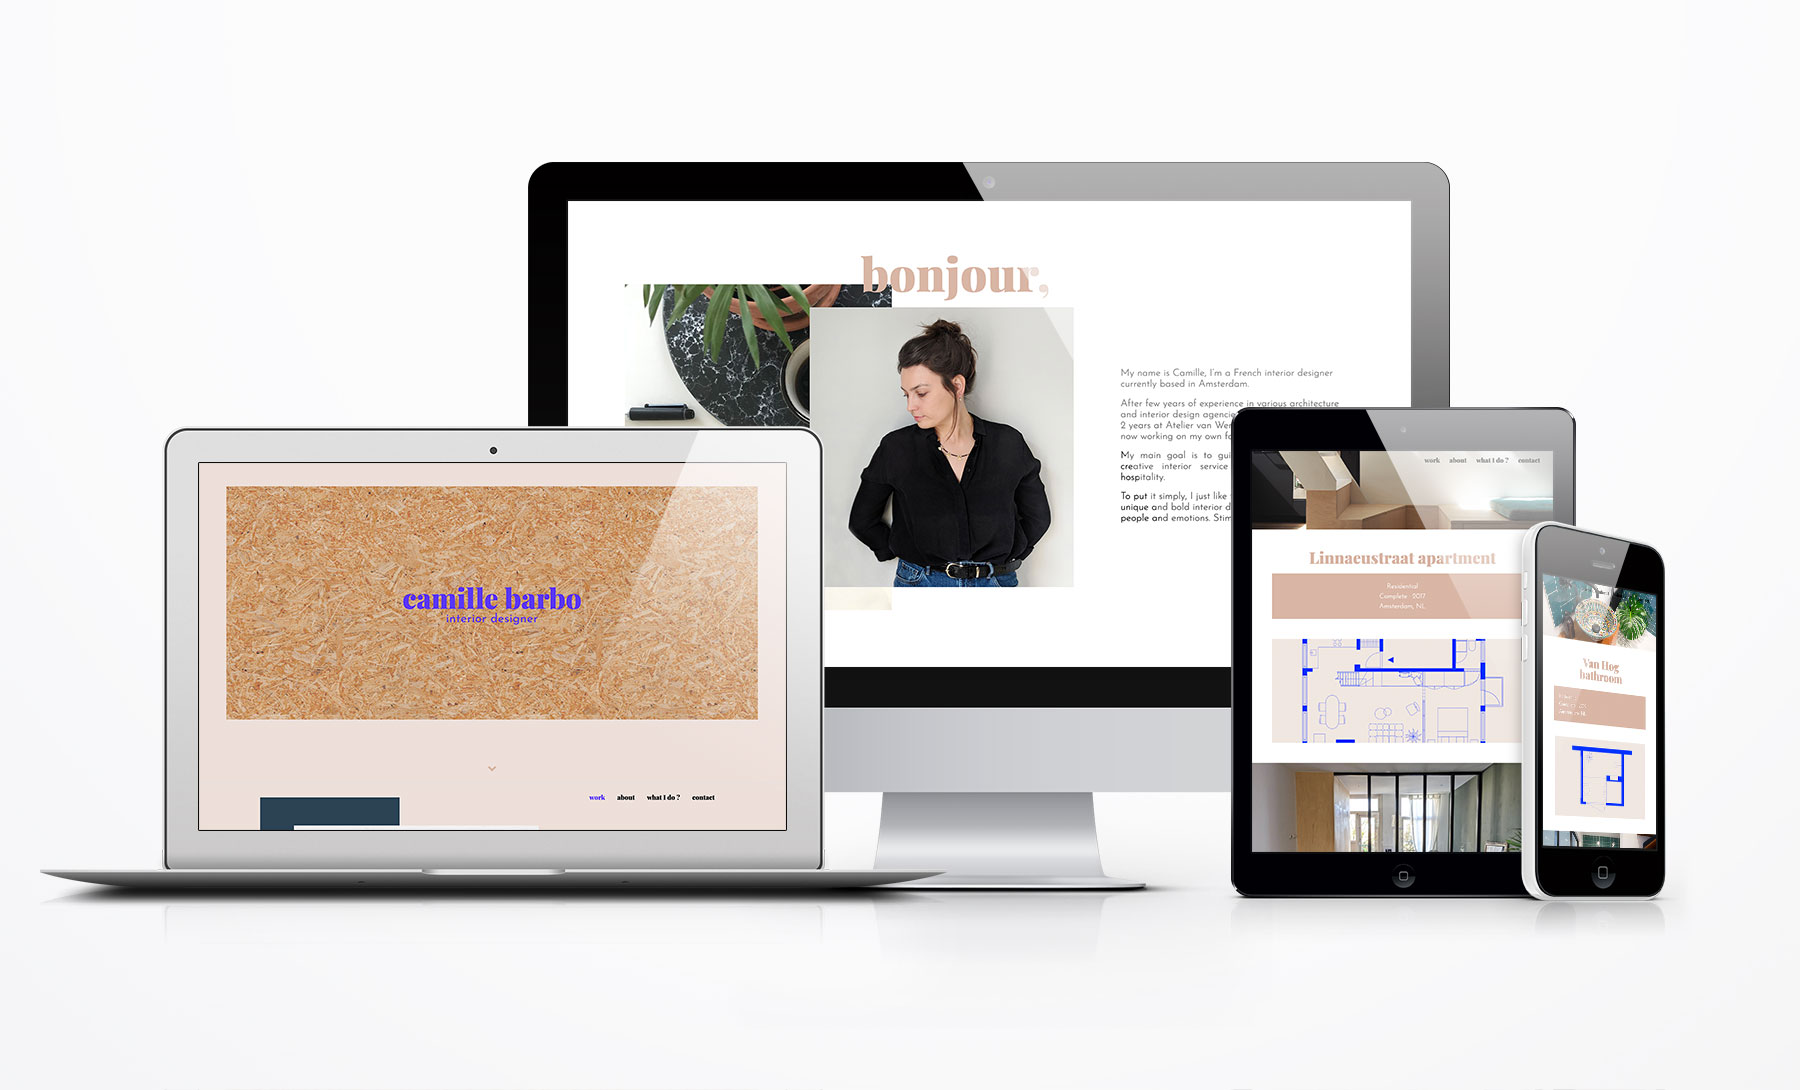 Camille-Barbo website mockup by Rocque Design